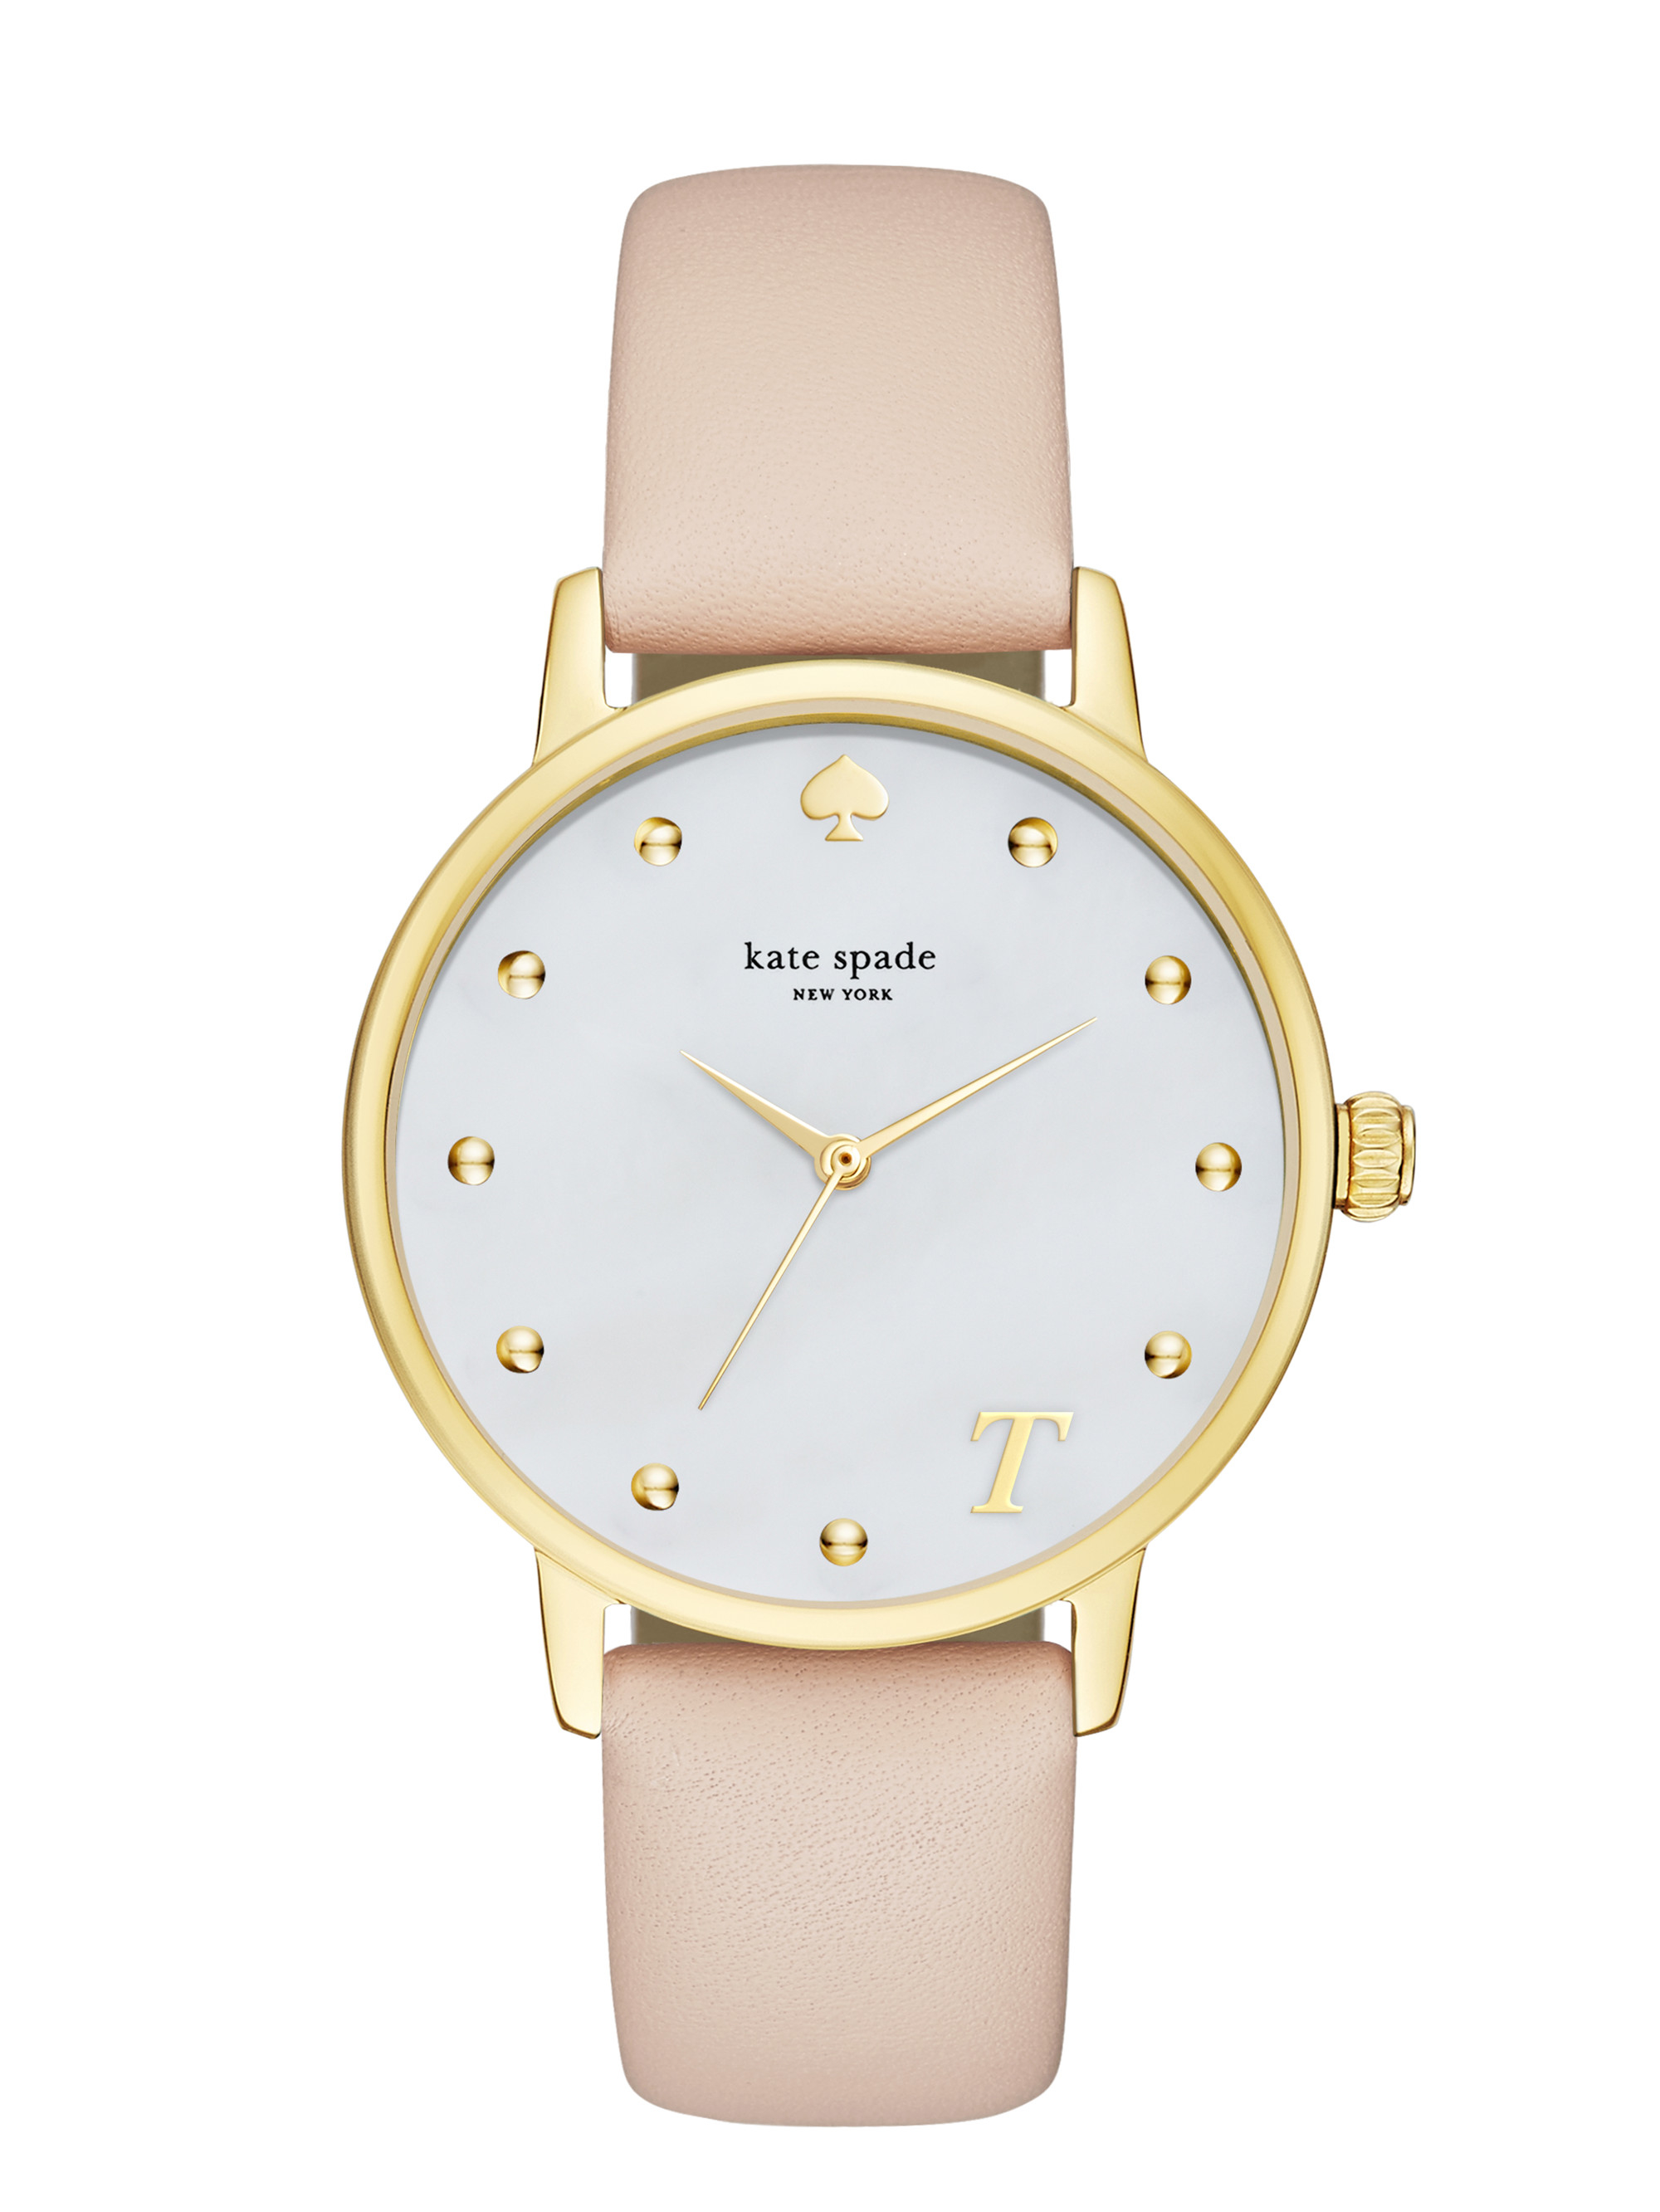 kate spade new york monogram metro watch in natural lyst. Black Bedroom Furniture Sets. Home Design Ideas